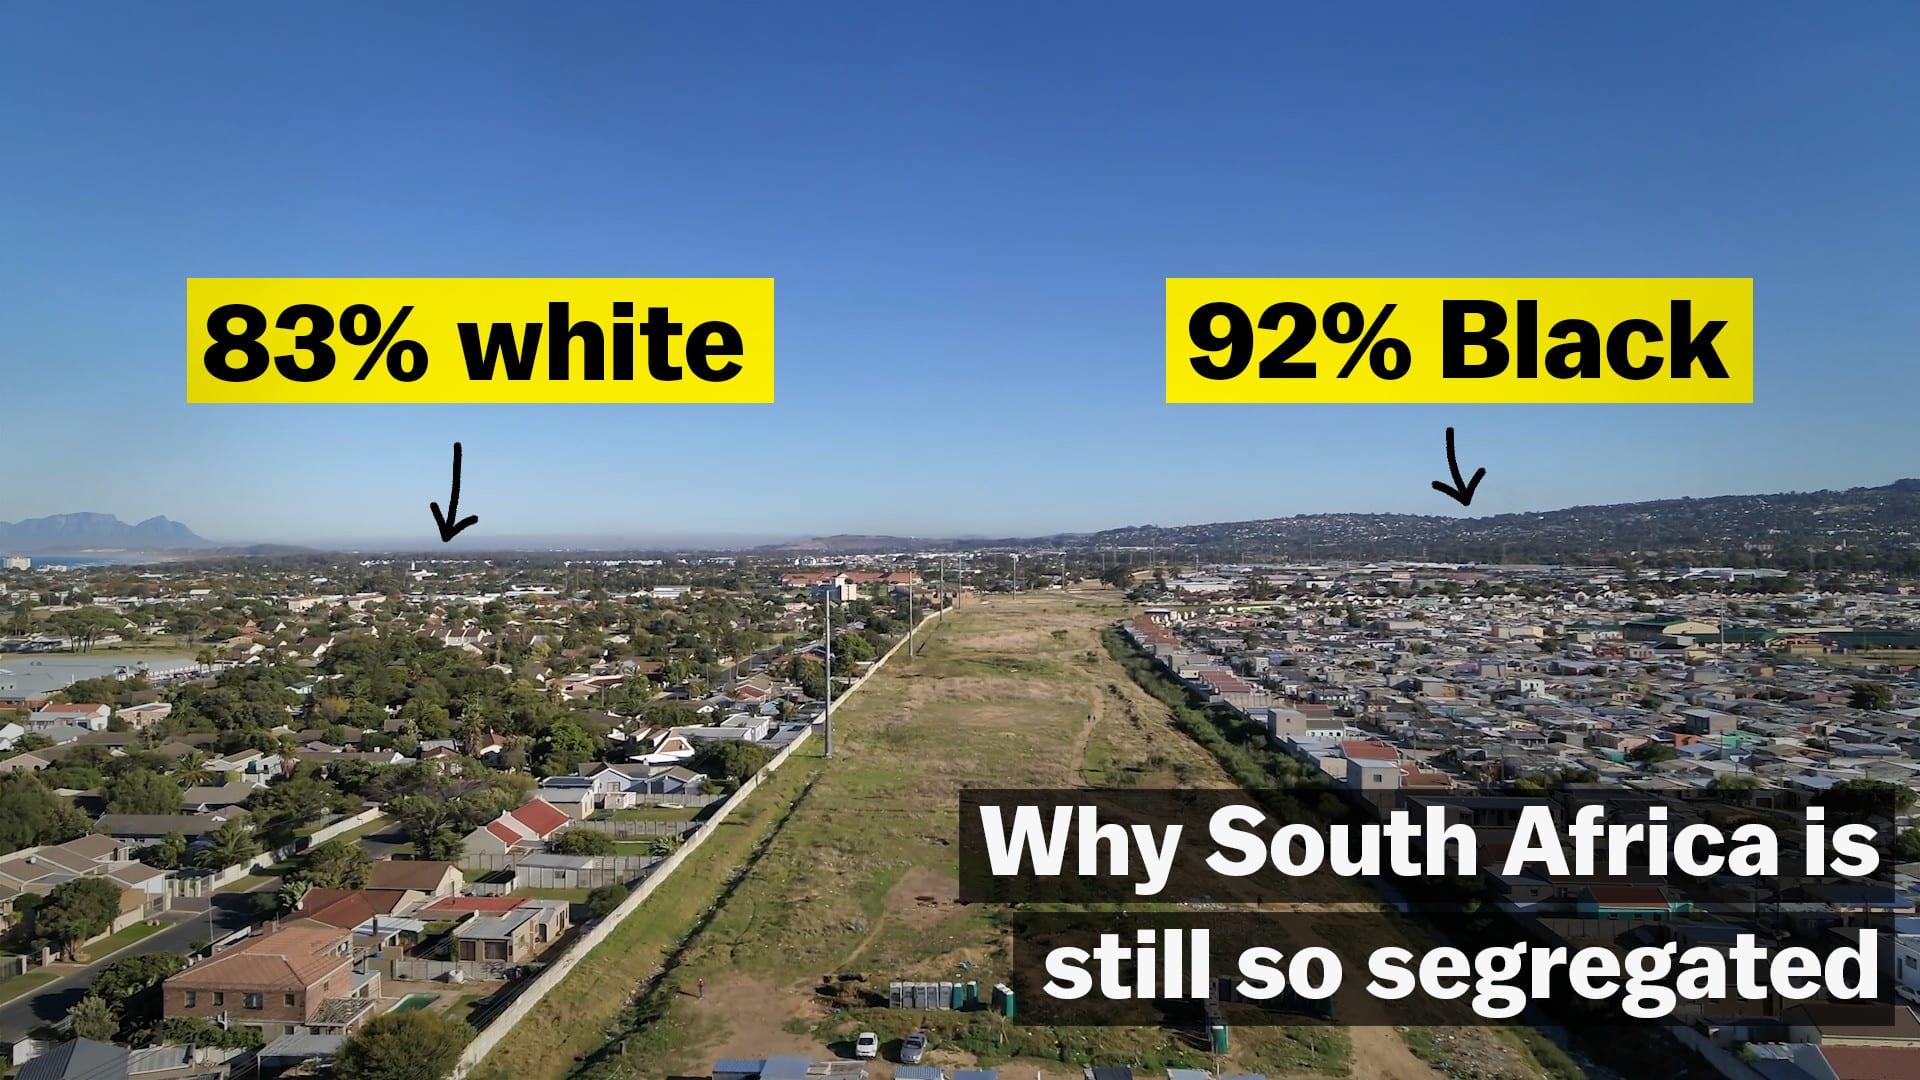 Why South Africa is still so segregated